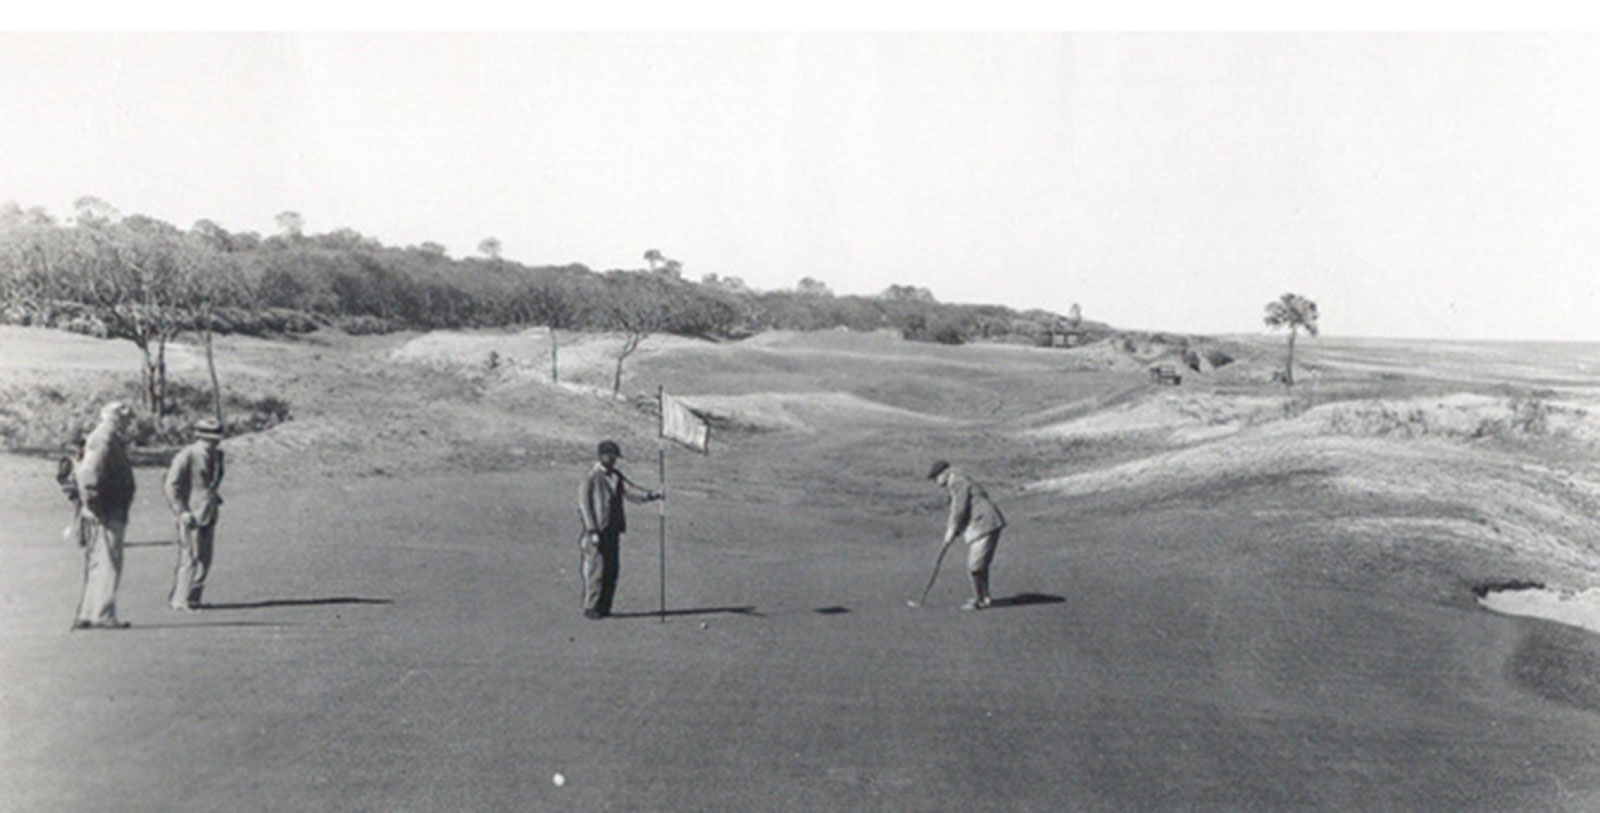 Historic Image of the Great Dunes Course at Jekyll Island Club Resort, Member of Historic Hotels of America, Jekyll Island, Georgia